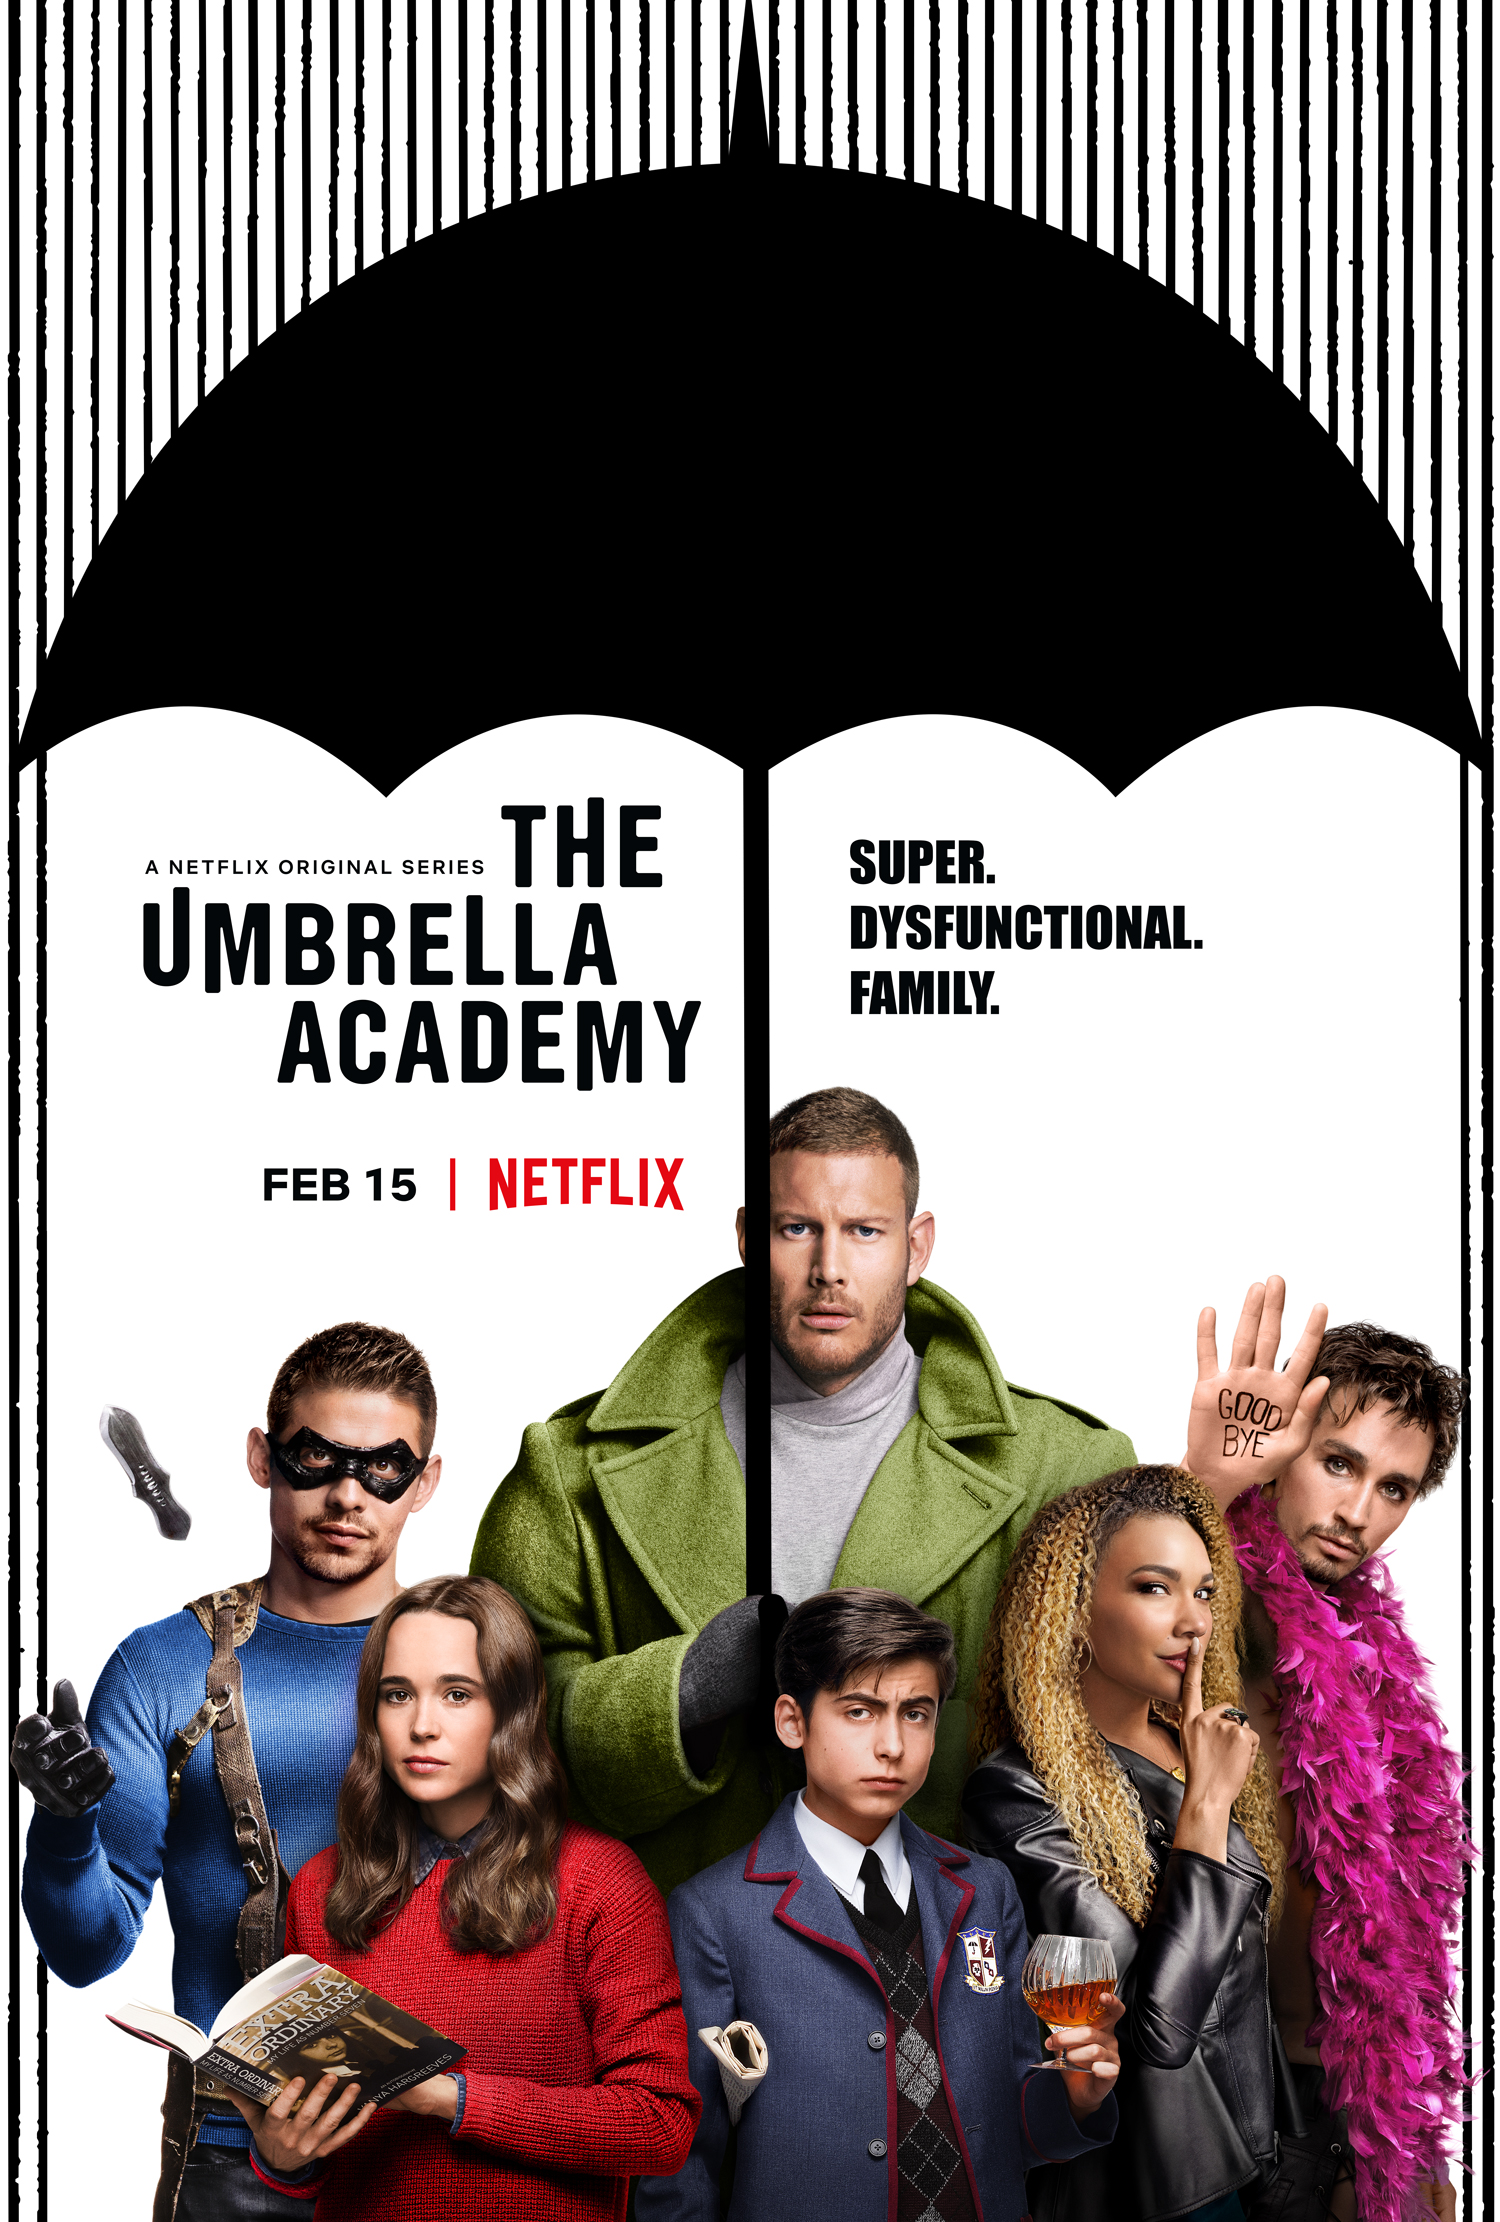 """The Umbrella Academy - By Sonia AvilesNetflix's new series The Umbrella Academy is a whole lot of fun and kept me on the edge guessing the plot of this show so far. The first episode starts off a bit cute then turns to a whole lot of weird and it left me with lots of questions. To put it simply, on the first of October in the year 1989, 43 women around the world gave birth, however these women were not pregnant on the beginning of that specific day. Let that sink in.From there a strange older man by the name of Reginald Hargreeves (Colm Feore) sought out to adopt seven of these special children and raise them to be """"extraordinary"""" superheroes. Simple premise, right? No. It gets a bit more intricate than that as the episodes unravel bits and pieces of a bigger puzzle.The first episode meets only six of the seven heroes that come together for their father's funeral: Luther (Tom Hopper), Diego (David Castaneda), Allison (Emmy Raver-Lampman), Klaus (Robert Sheehan), Vanya (Ellen Page), and """"Number 5"""" (Aidan Gallagher). While they are at their family home, they discover something is off about the way their father died, which introduces the audience to the plot. However, what is strange is the focus on their father's missing manacle, which apparently, he never left behind. Their """"mother"""" seems to be a malfunctioning robot, and """"Number 5"""" came back out of seemingly from the future where everyone in the world is dead. From that point onward, it is one strange ordeal after another, that somehow connects. This also a talking and very intelligent monkey who is now in charge of their home, which I found intriguing and delightful. Planet of the Apes, anyone?All jokes aside, not only are these ordeals strange, but somehow it feels like the show is trying to feed me clues to keep note for future episodes. Or at the very least keep me guessing.Which brings me to my next point; the atmosphere. I want to really emphasize that the atmosphere of this show isn't the typical """"superheroes"""